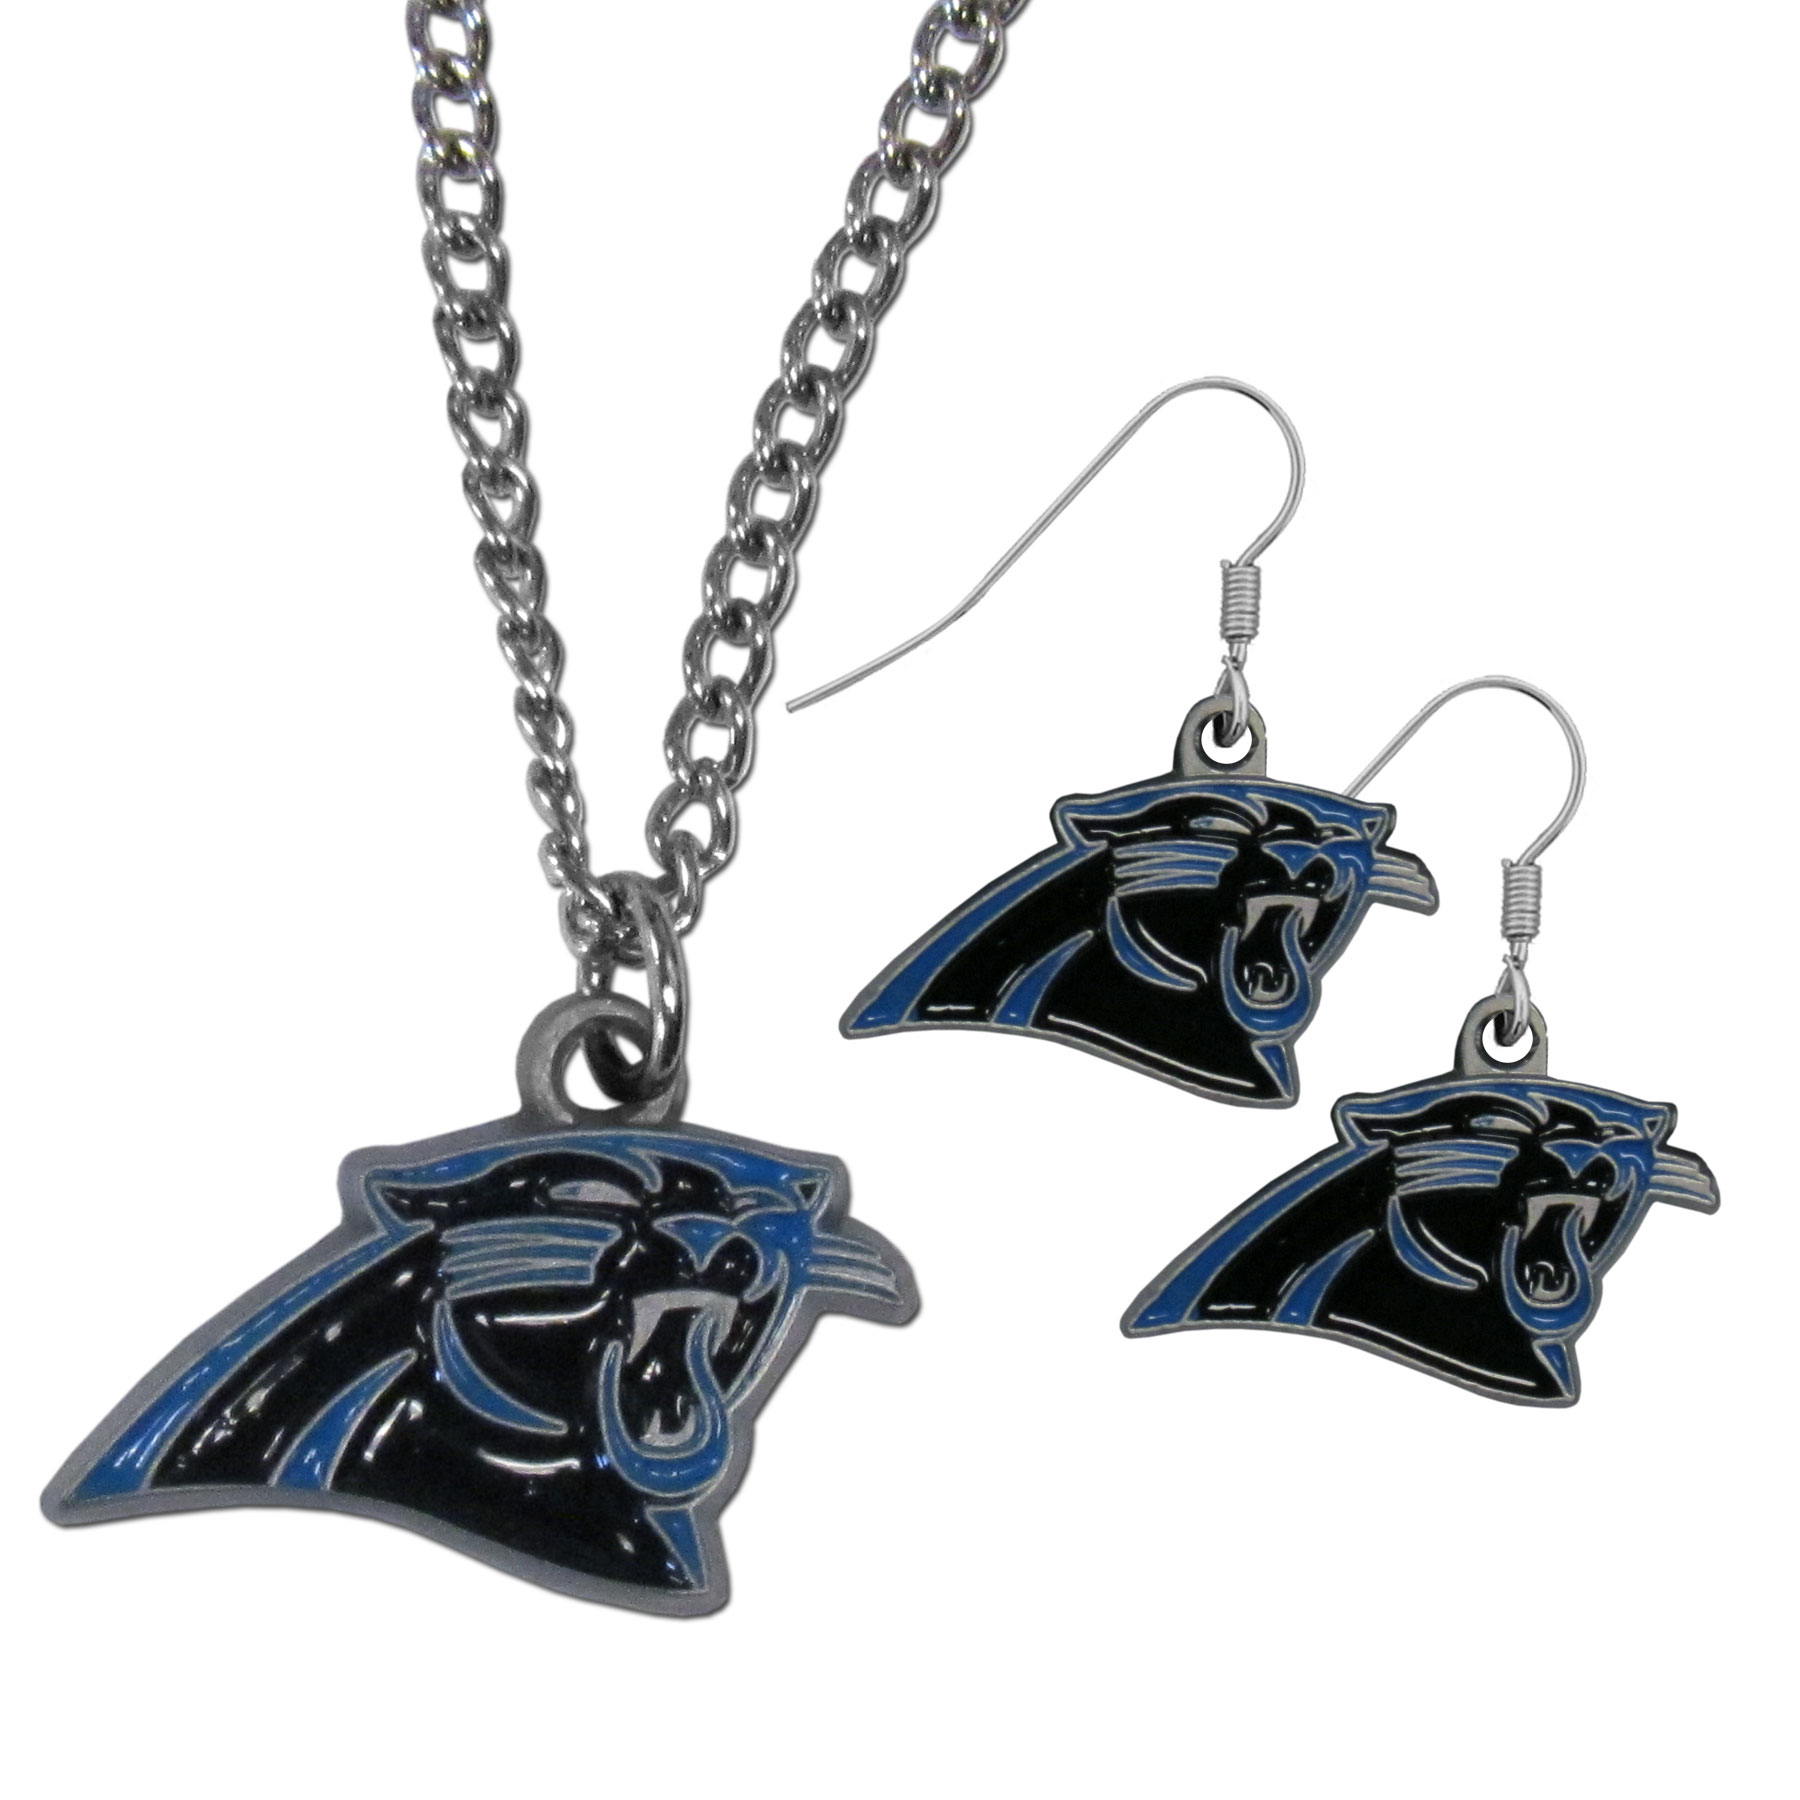 Carolina Panthers Dangle Earrings and Chain Necklace Set - This classic jewelry set contains are most popular Carolina Panthers dangle earrings and 22 inch chain necklace. The trendy, dangle earrings are lightweight and feature a fully cast metal team charm with enameled team colors. The matching necklace completes this fashion forward combo and is a spirited set that is perfect for game day but nice enough for everyday.